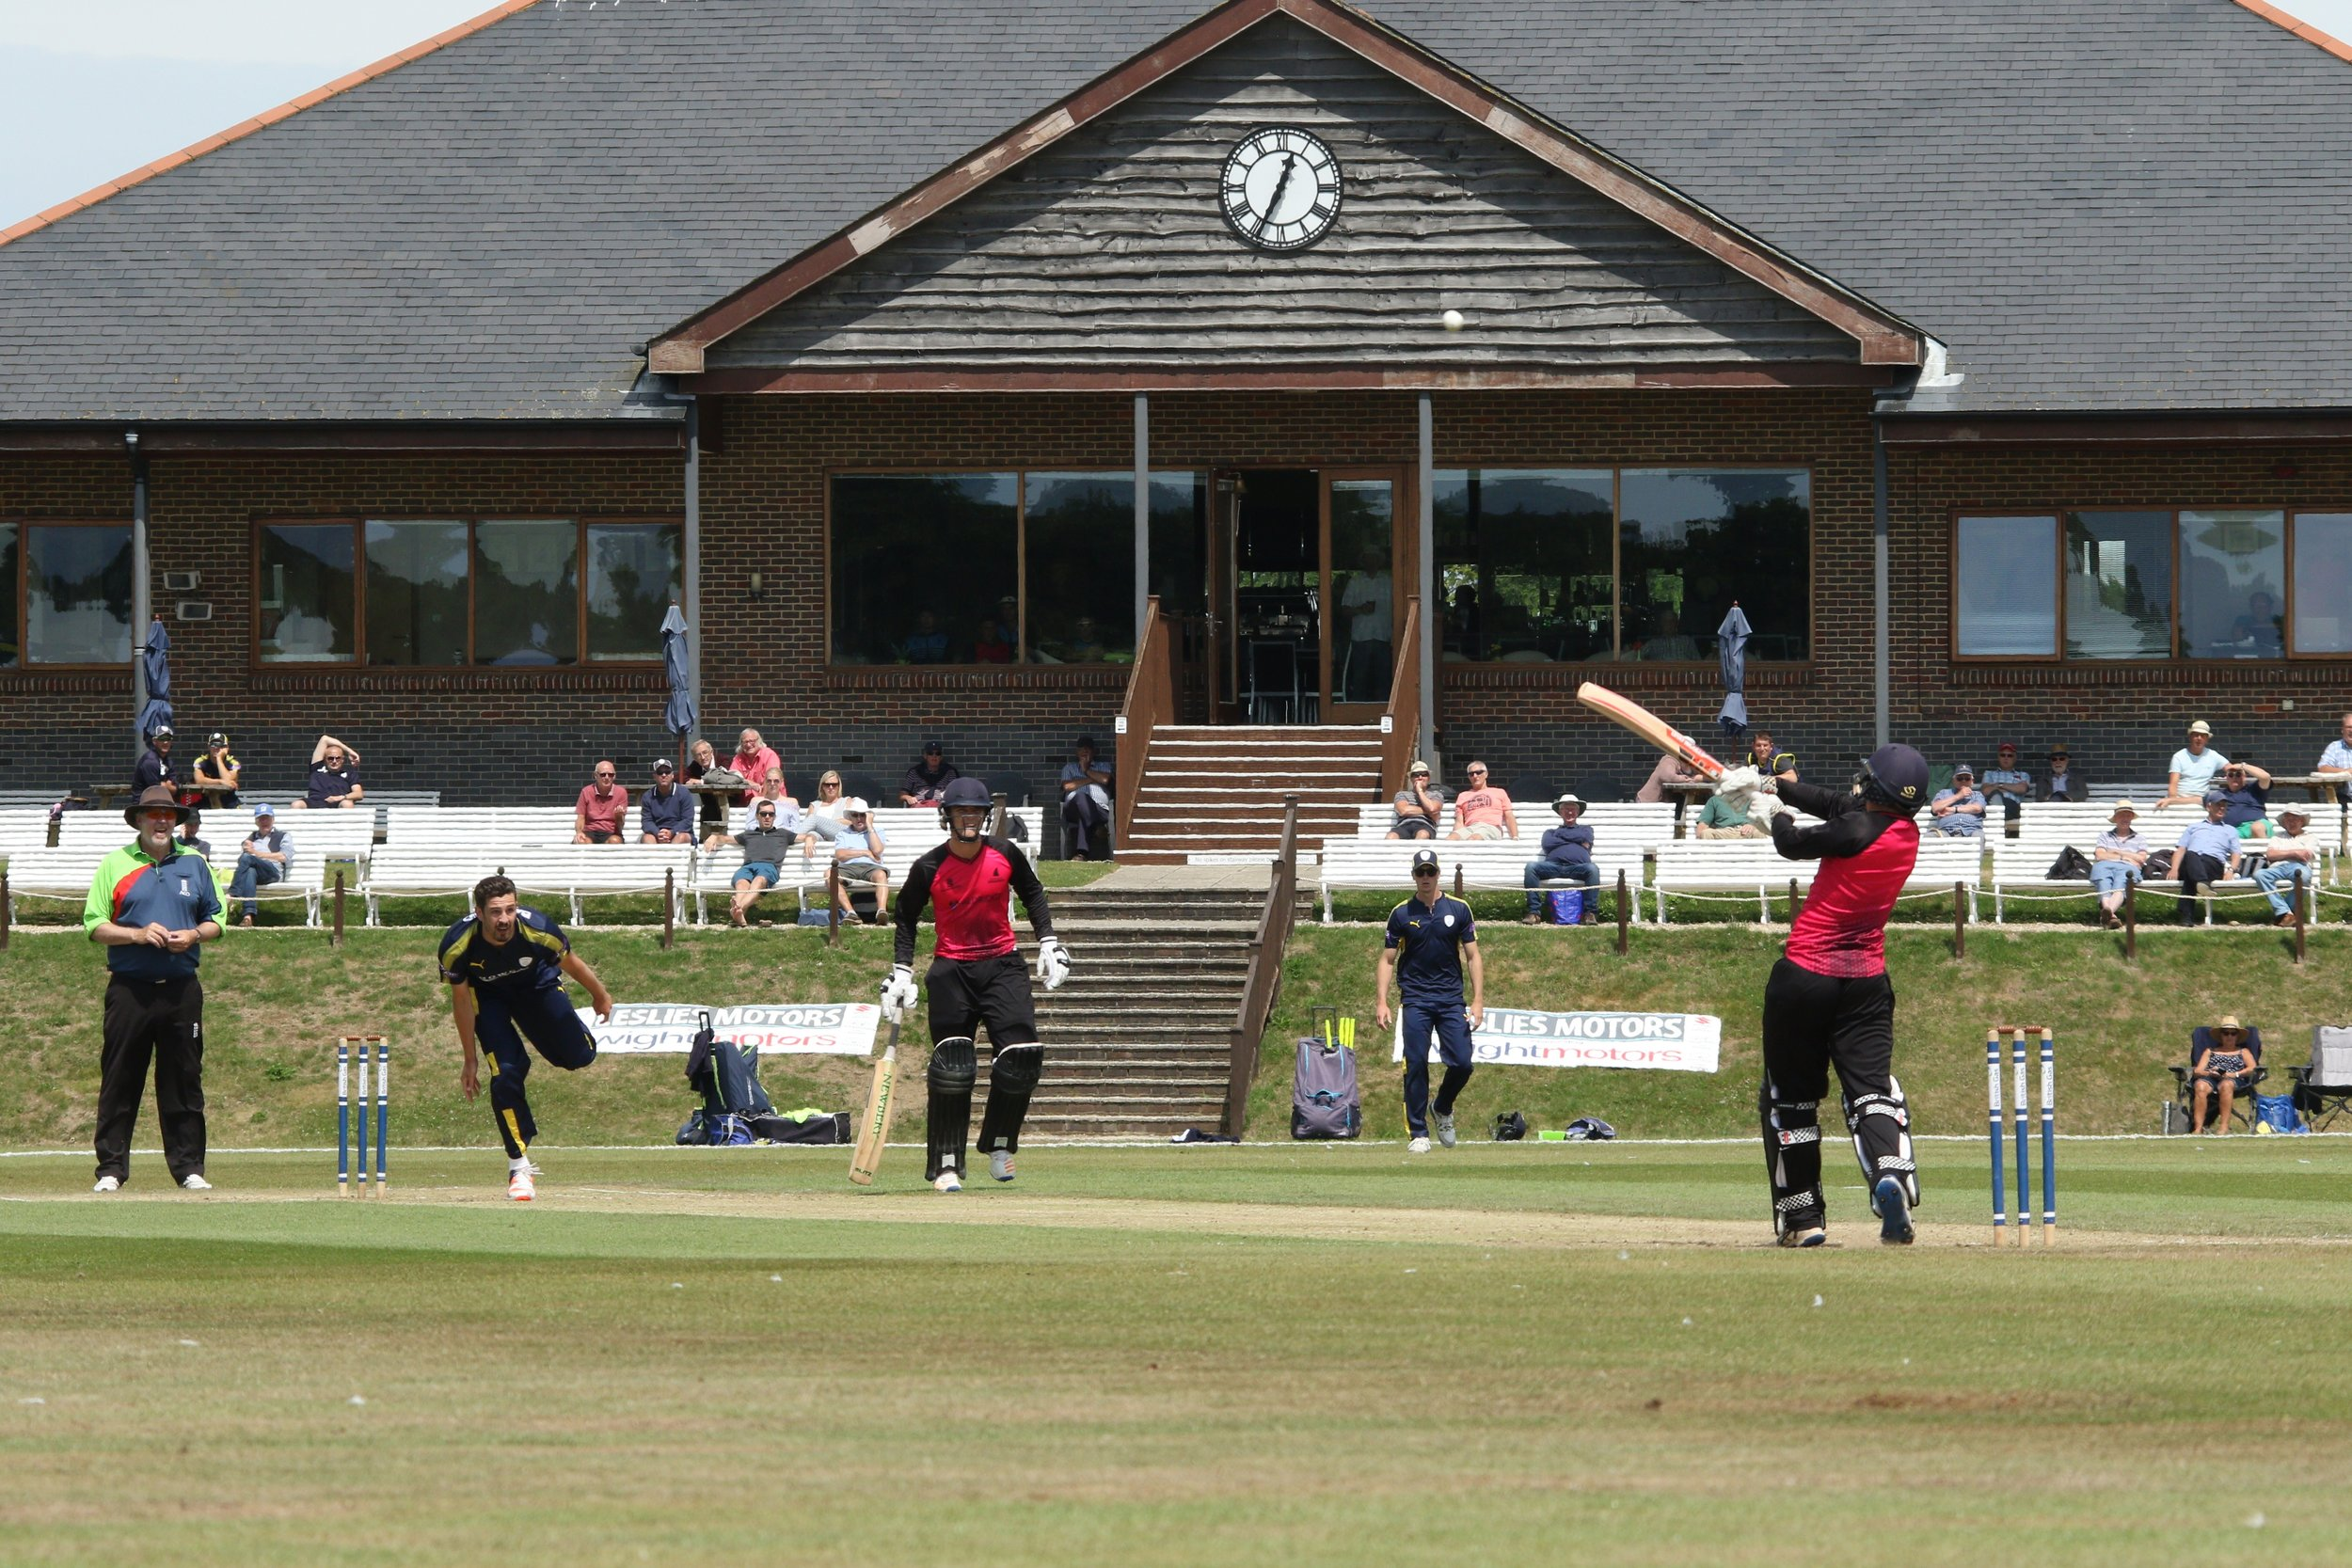 Hampshire v Notts - Mon 20 May - Thu 23 May11:00 - 18:00Purchase your ticket hereShould you wish to stay on the Isle of Wight for the four day match, The Seaview Hotel is offering a car-ferry inclusive package. To view the deal visit http://seaviewhotel.co.uk/events.aspx